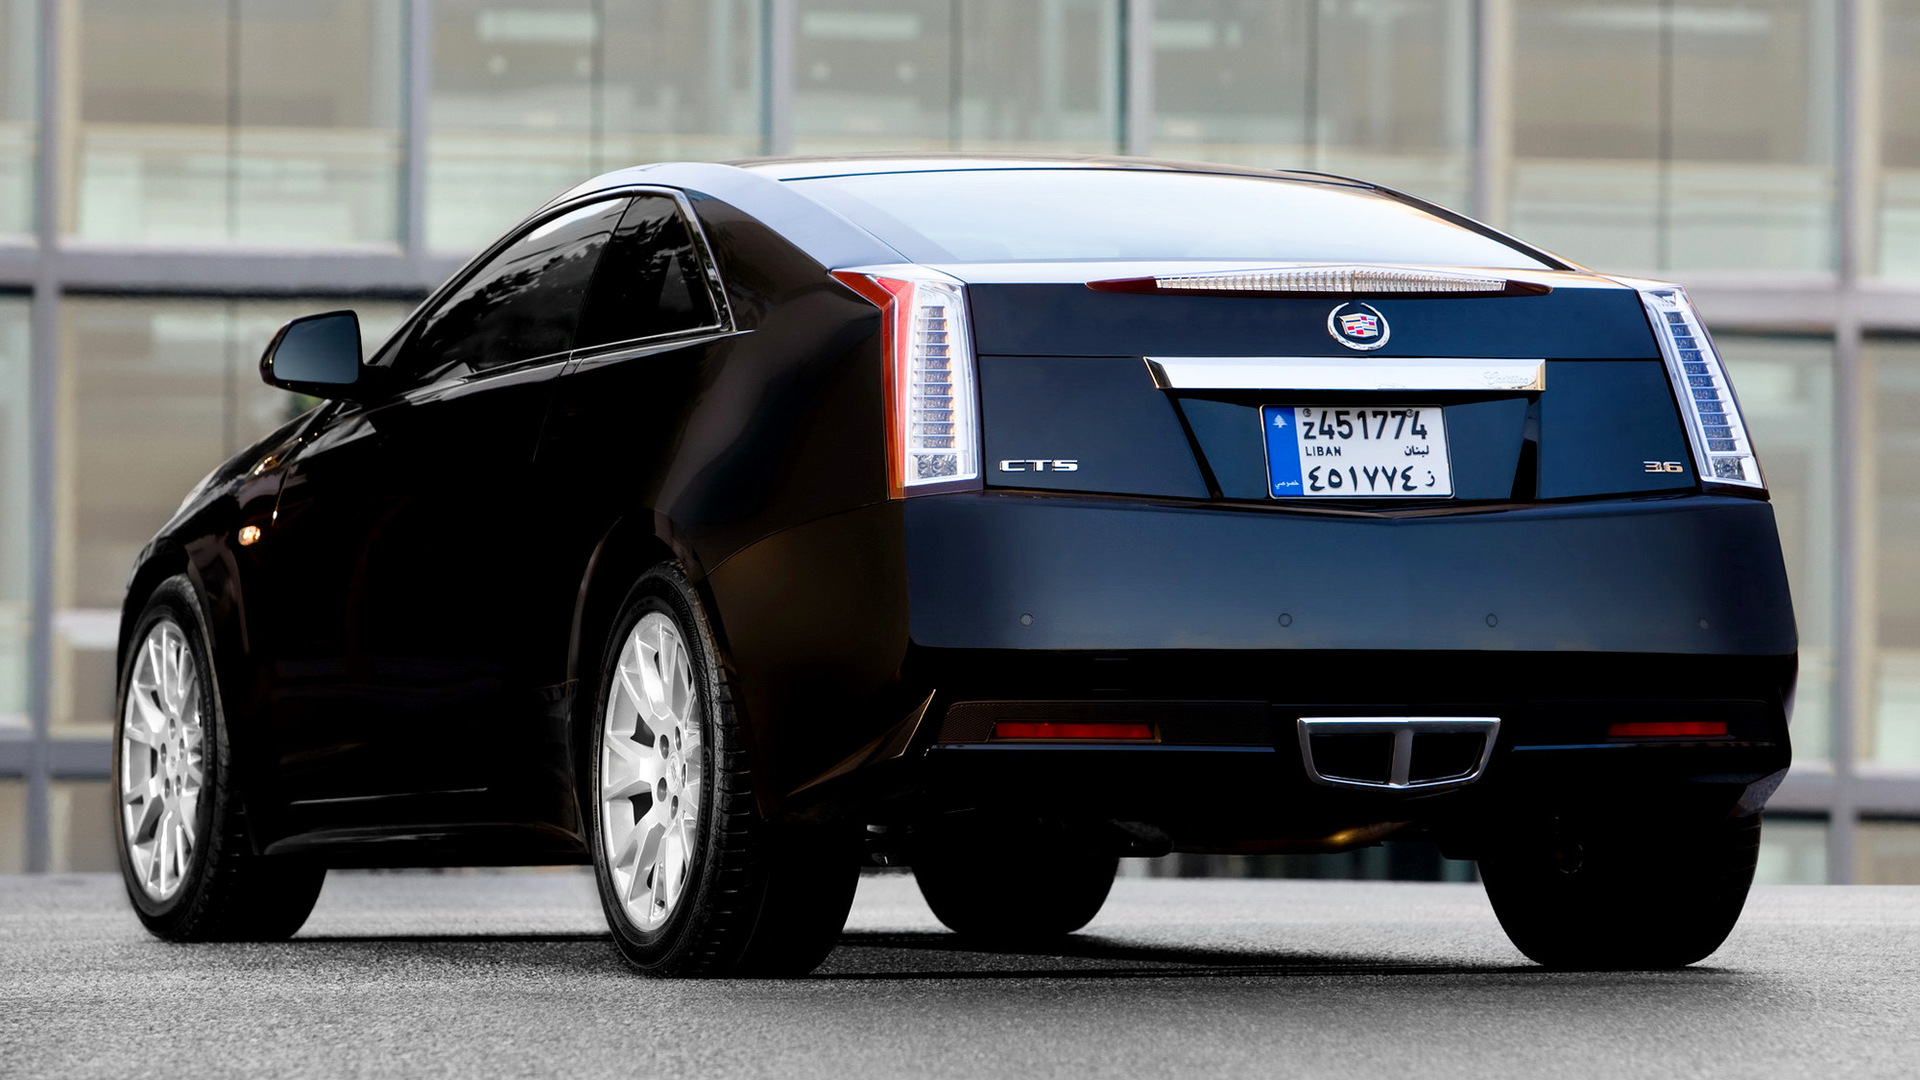 Cadillac CTS Coupe (2010) Wallpapers and HD Images - Car Pixel